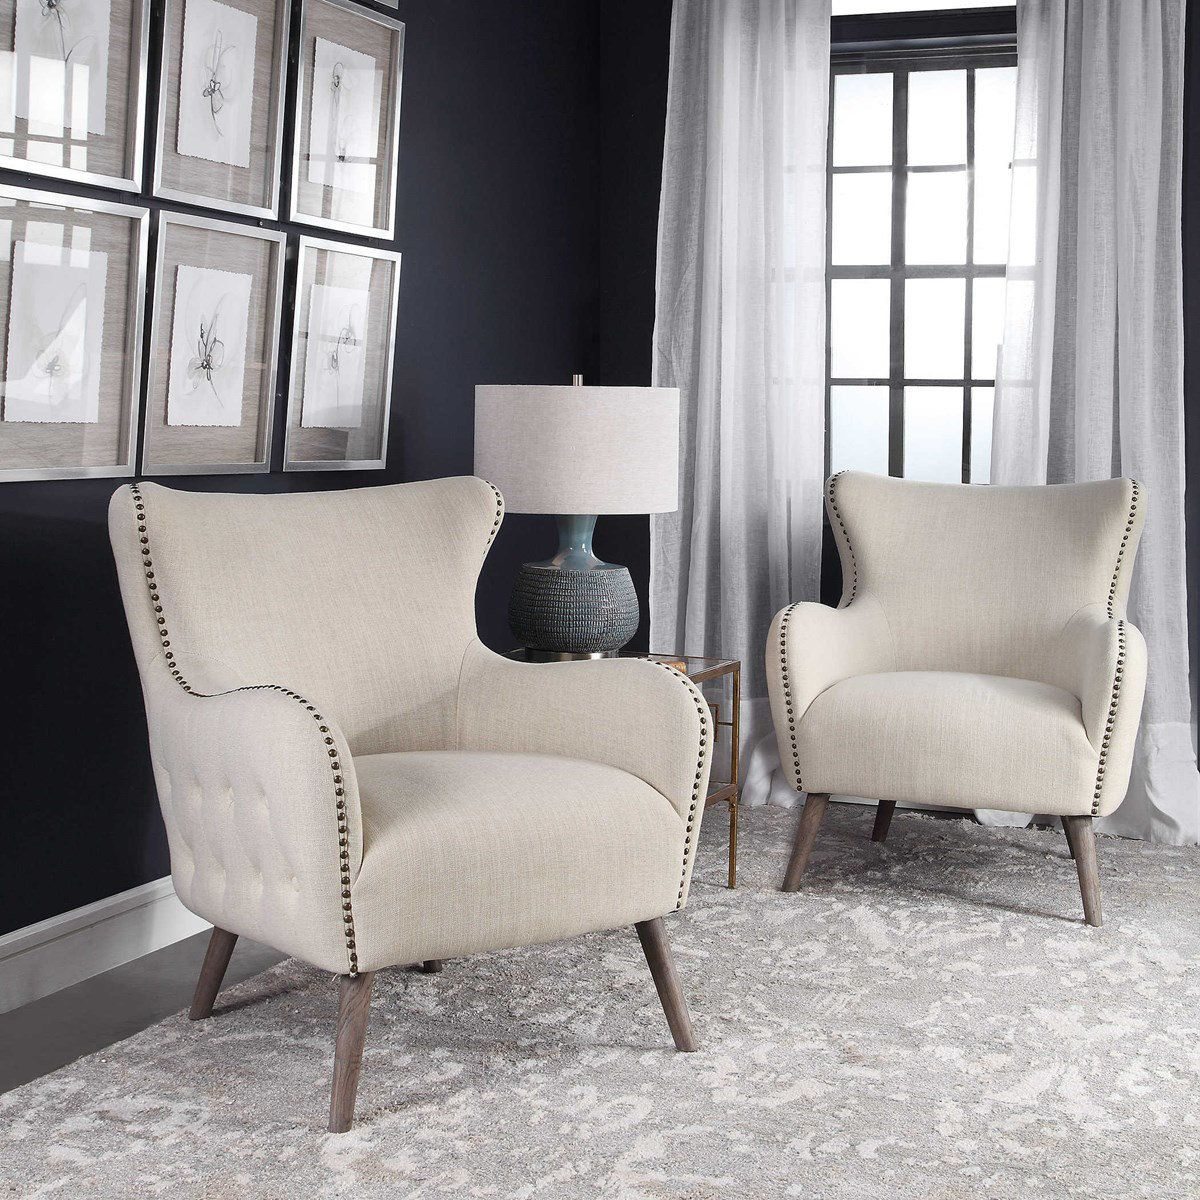 Tufted Cream Arm Chair Accent Chairs For Living Room Arm Chairs Living Room Wingback Chair Living Room